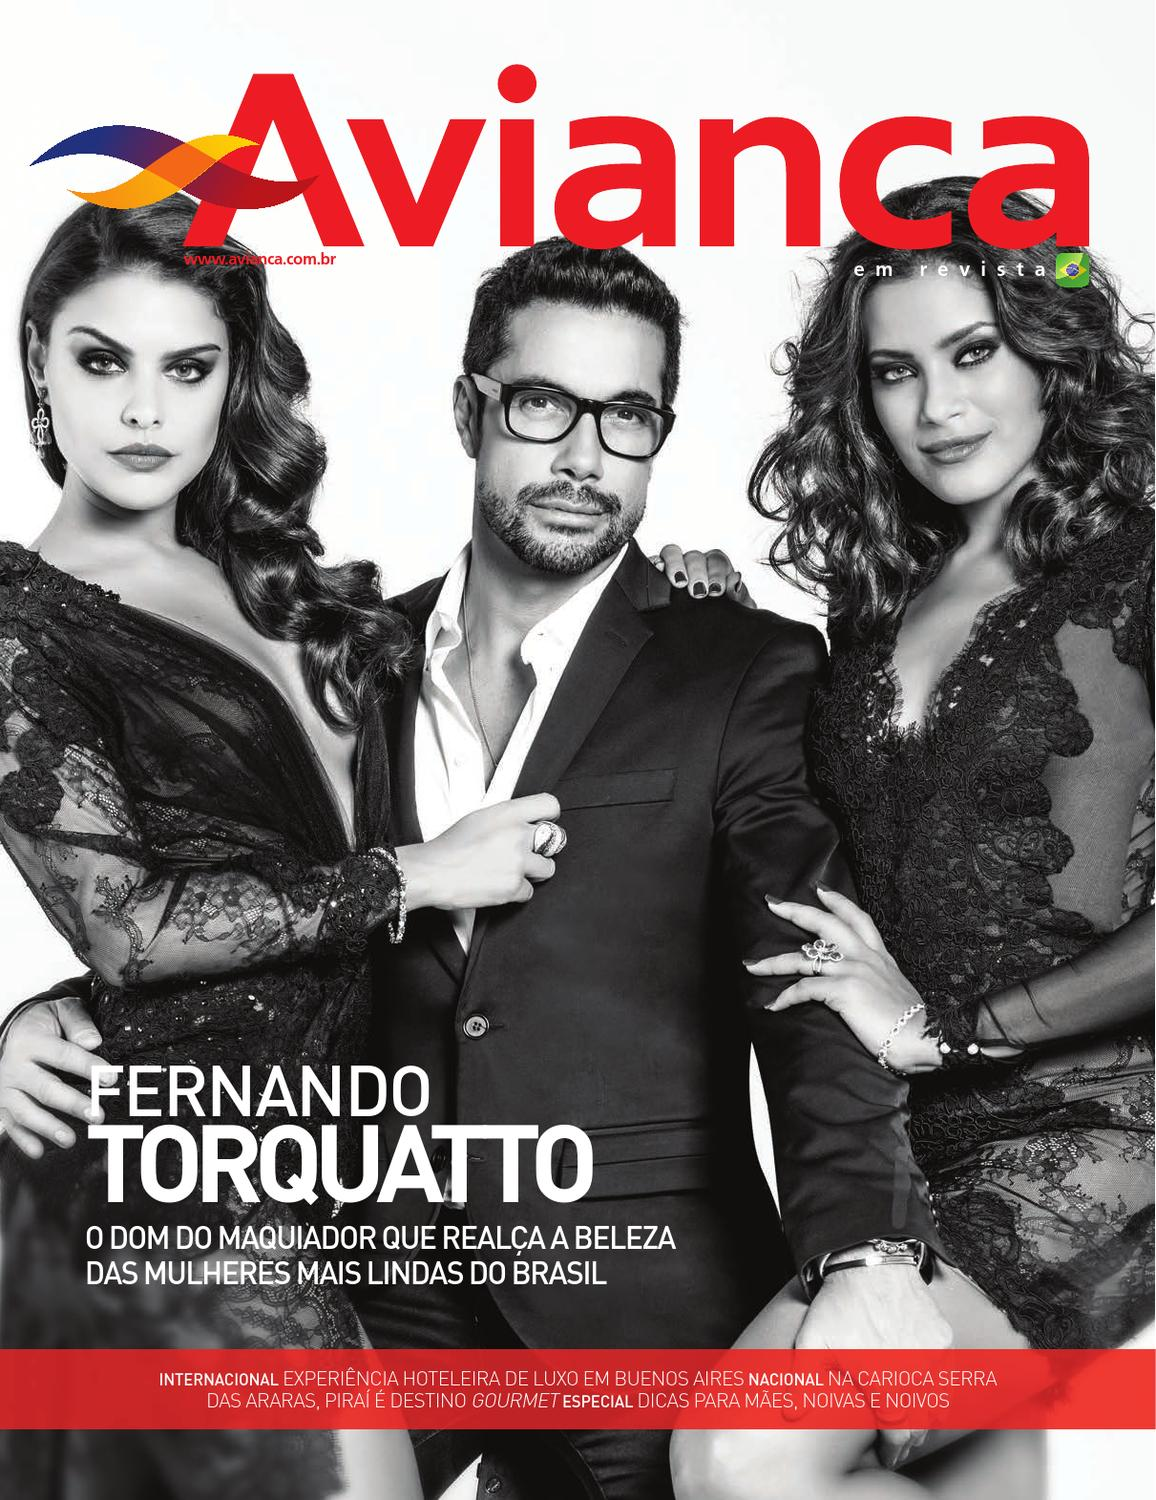 34 - Fernando Torquatto Avianca by Avianca em Revista - issuu 23641b691a